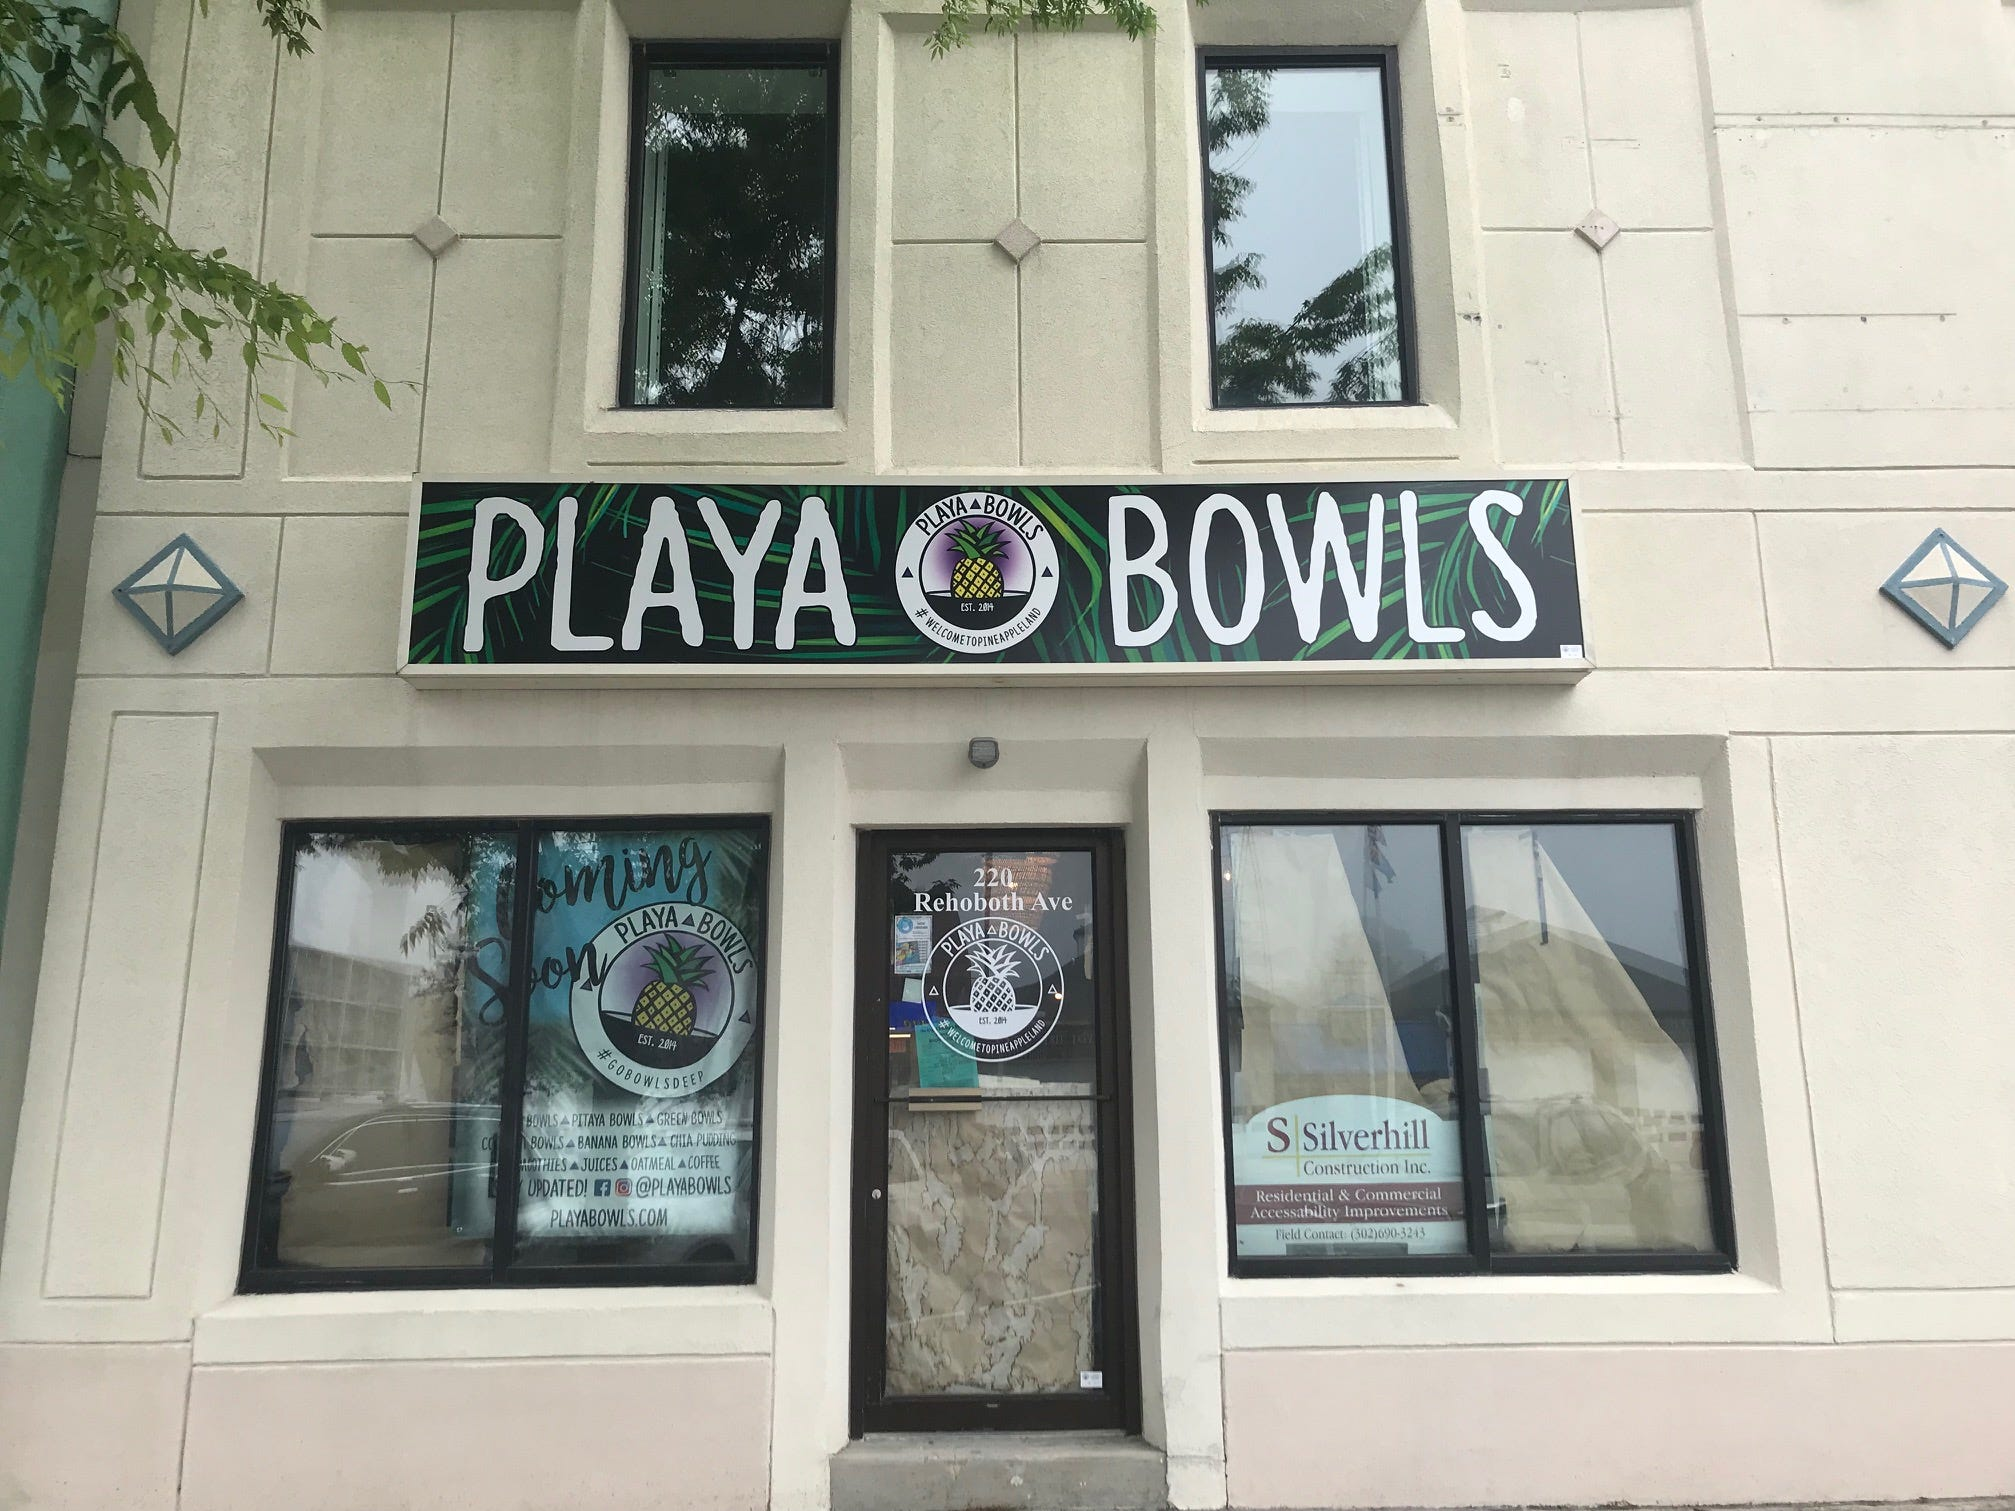 Playa Bowls, which has a location in downtown Newark, is opening a new site on Rehoboth Avenue.